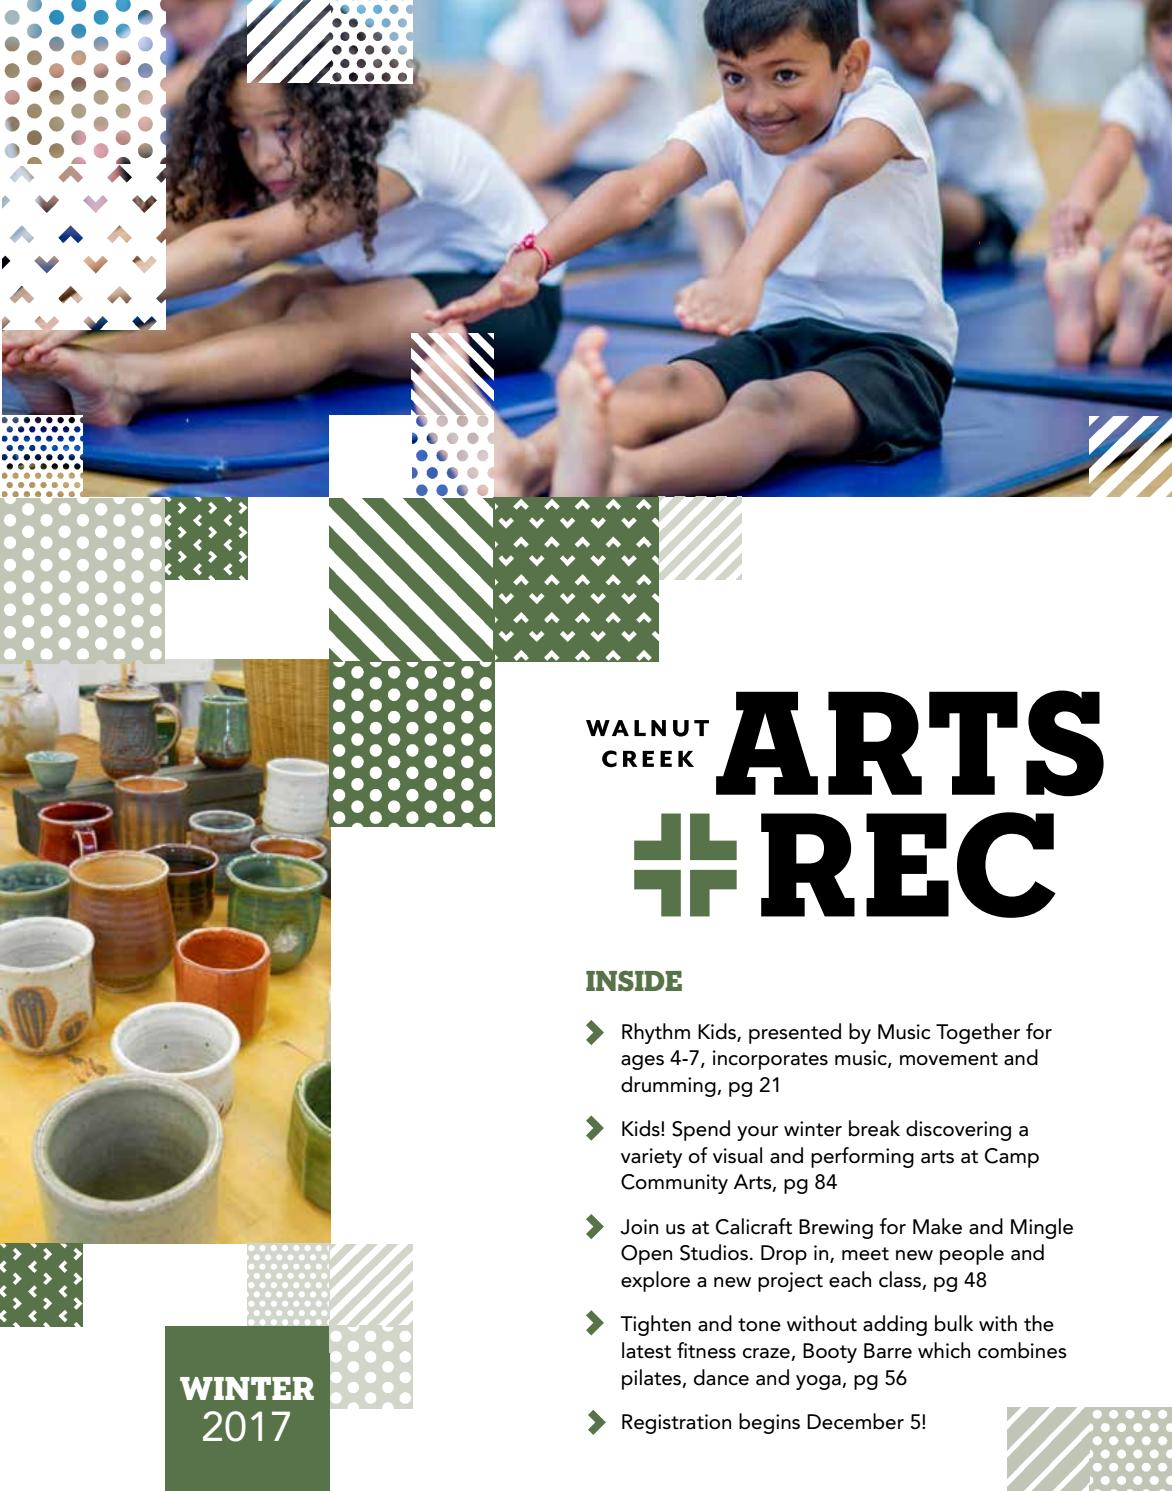 City of Walnut Creek Guide to Arts + Rec - Winter 2017 by City of Walnut  Creek - issuu 4be79017b